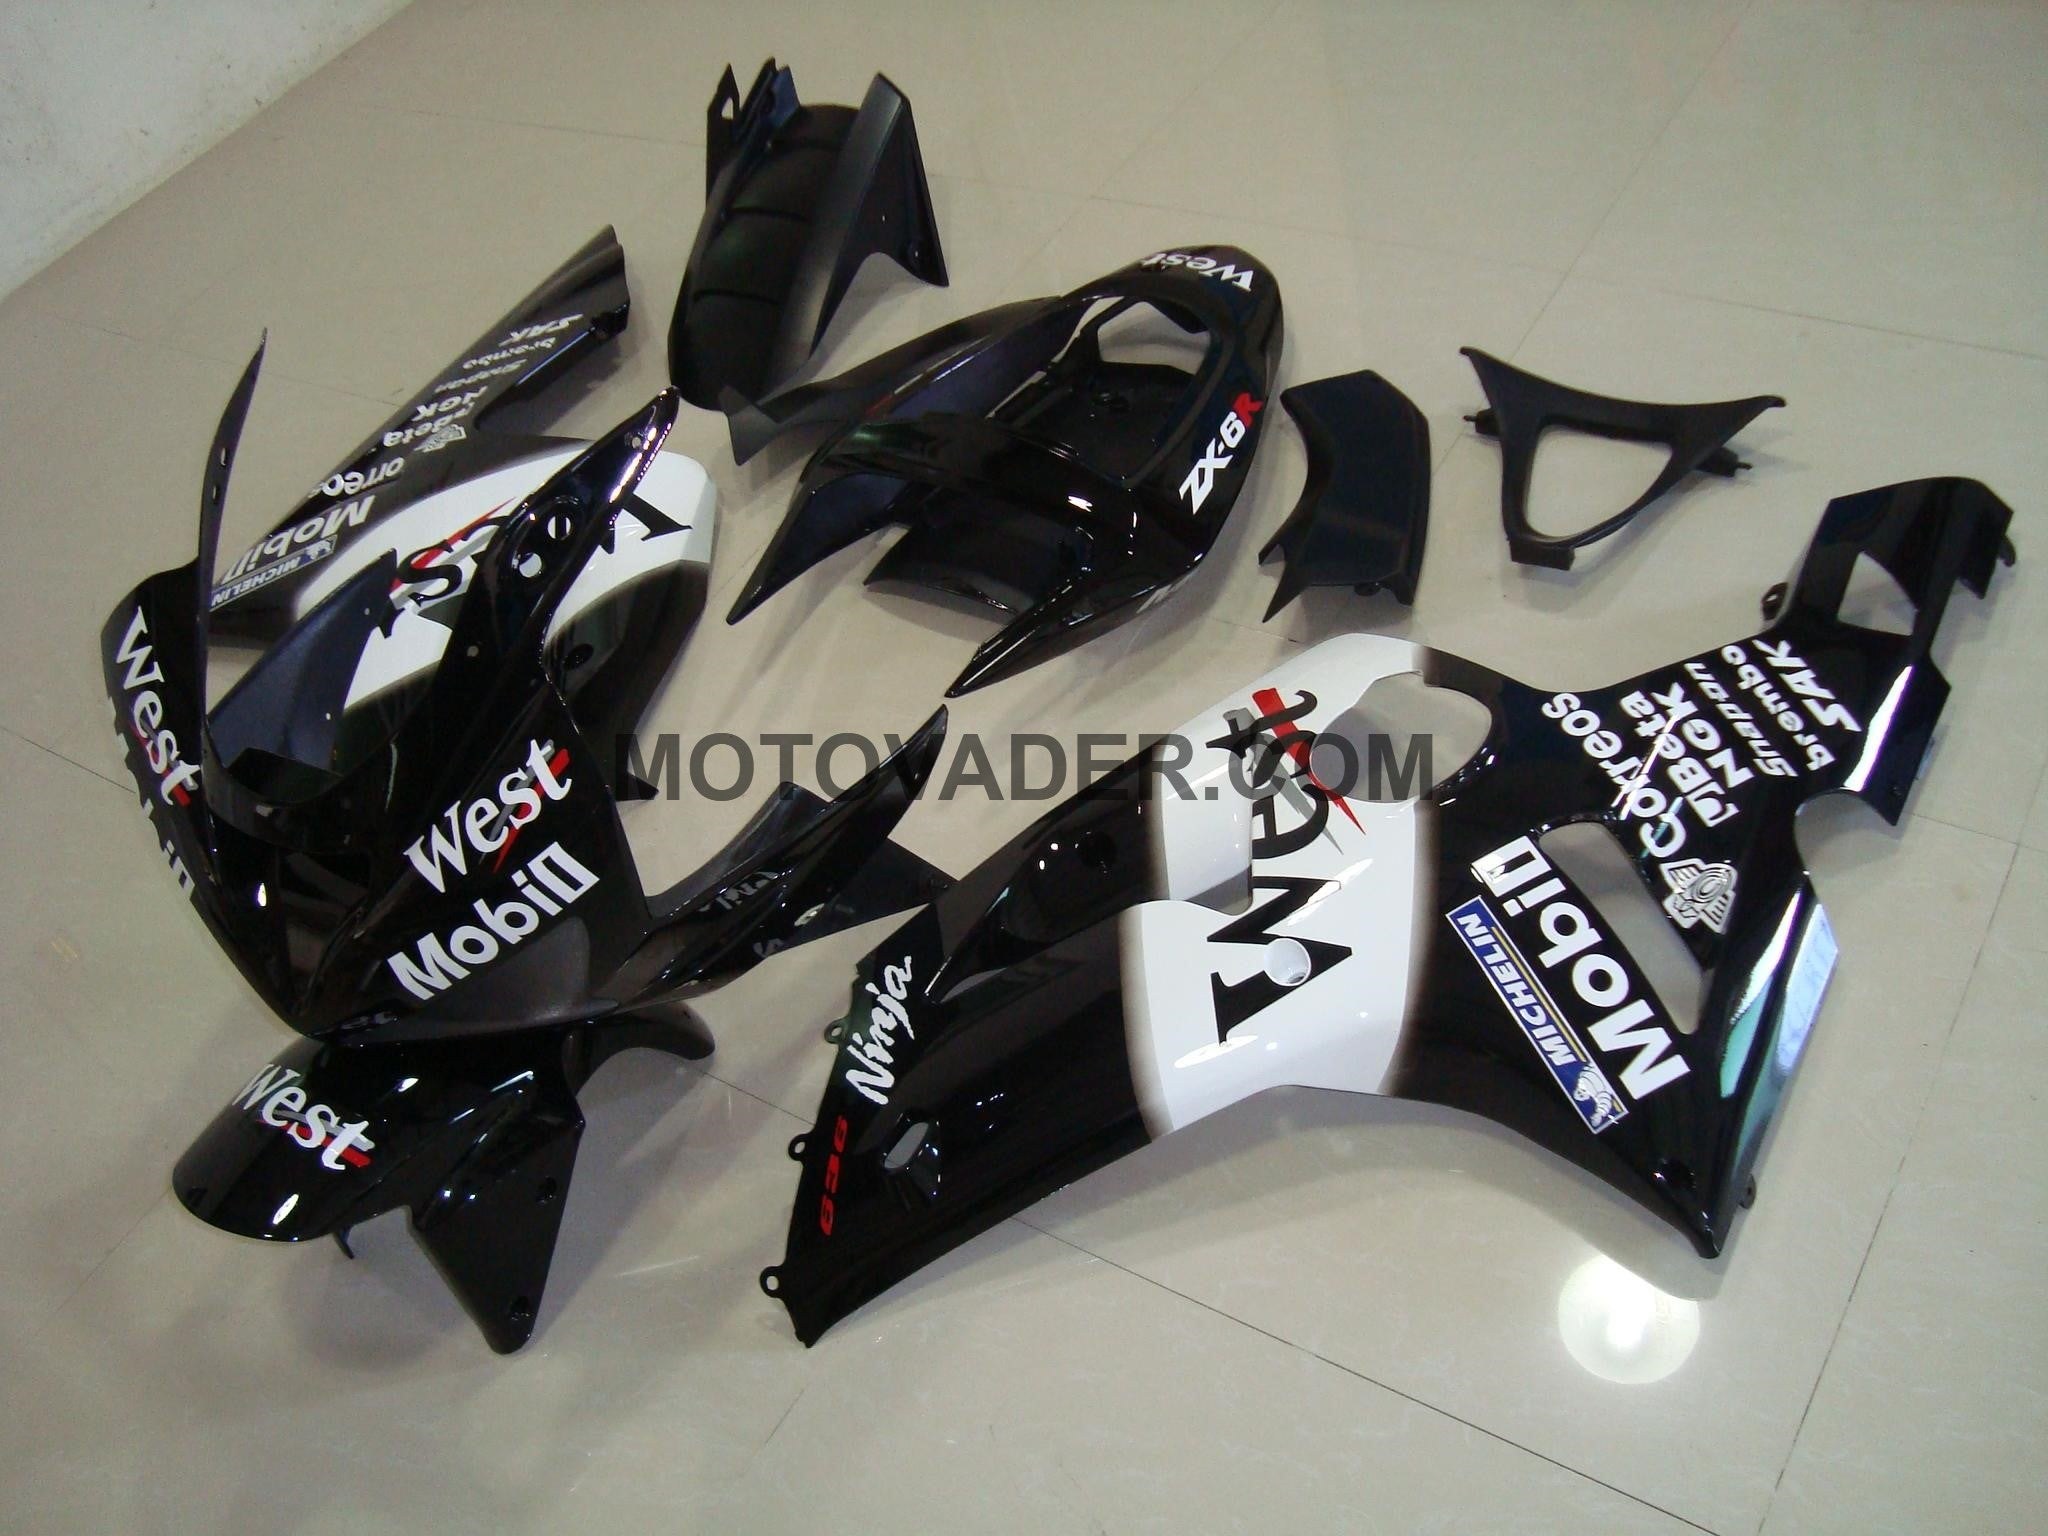 Kawasaki ZX-6R 2003-2004 West 3 Fairing